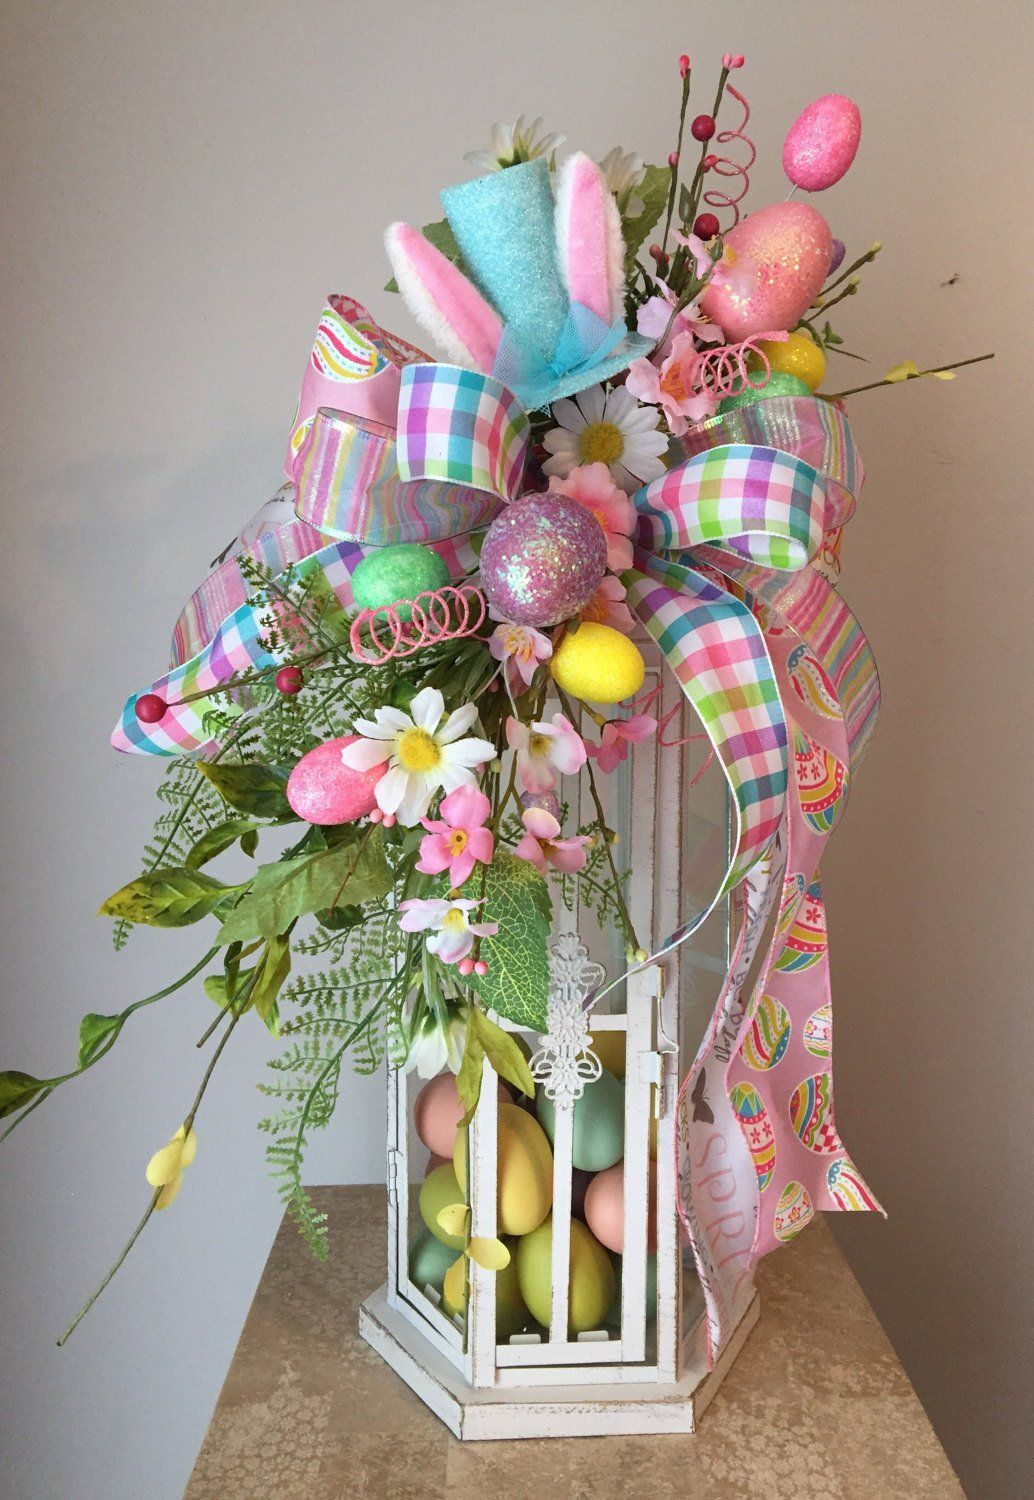 FUNNY BUNNY (Blue) - Decorative Whimsical Chic Easter/Spring Lantern Swag Tabletop Arrangement